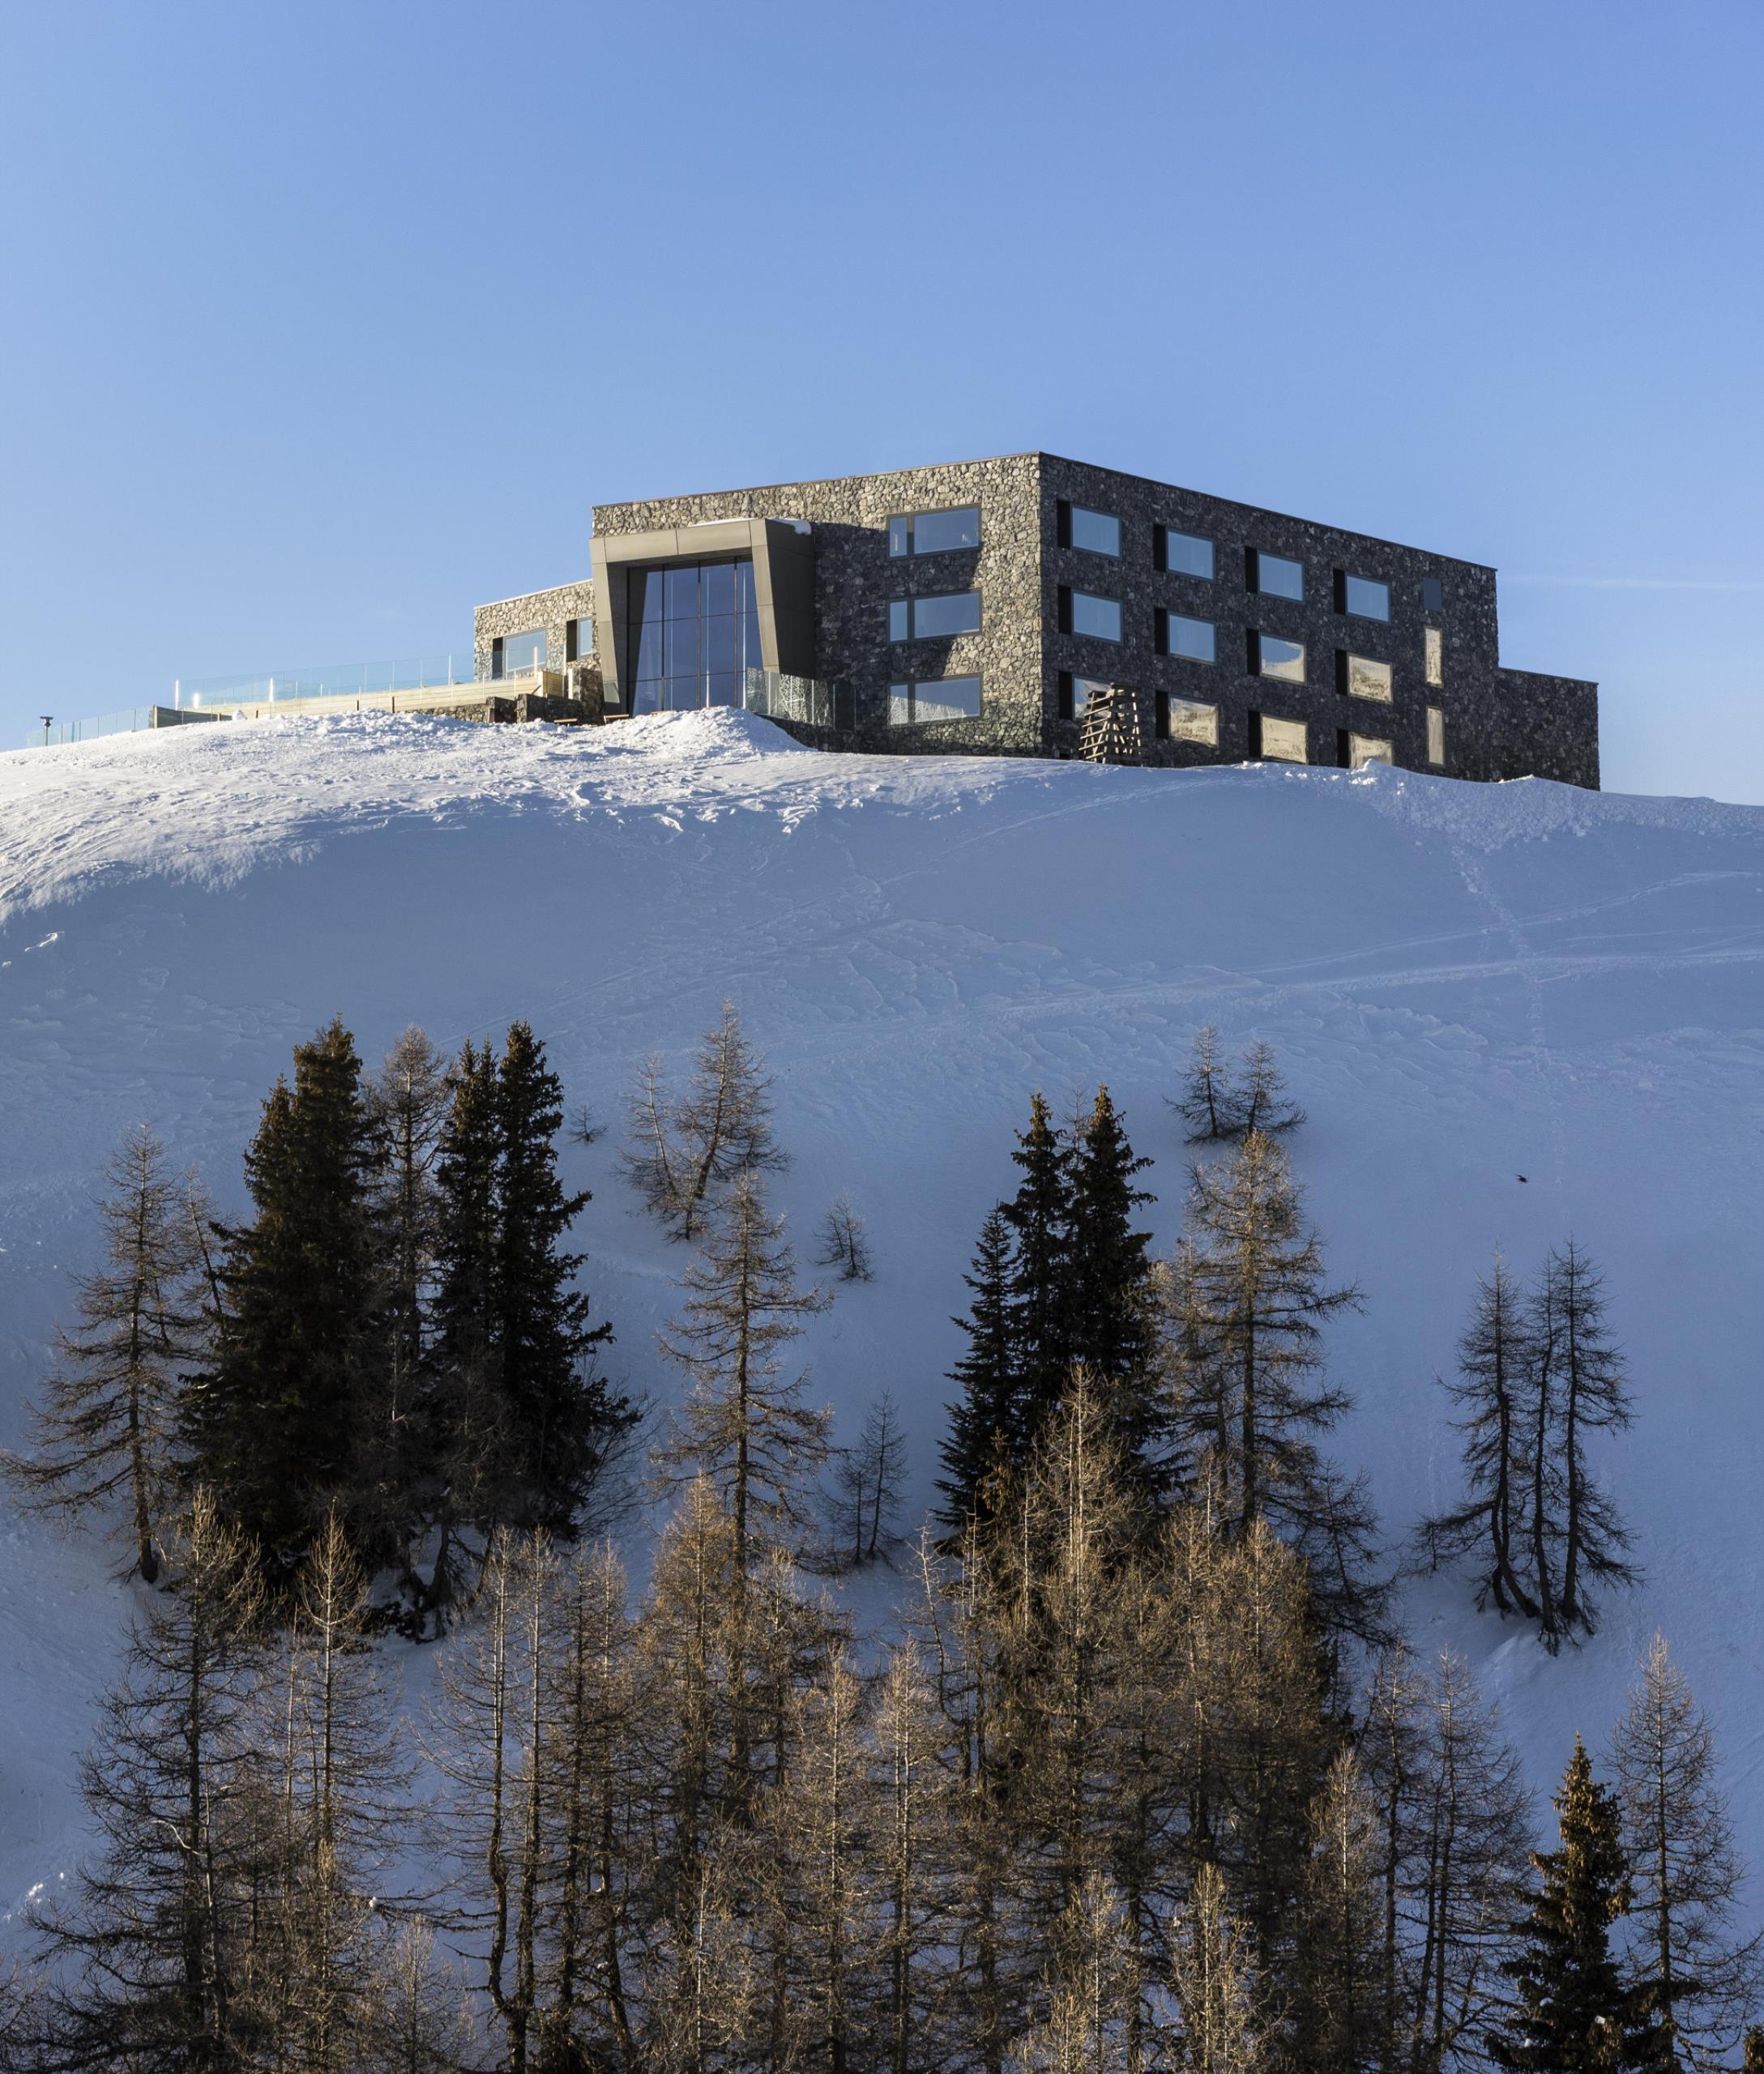 Chetzeron Architecture in Crans-Montana